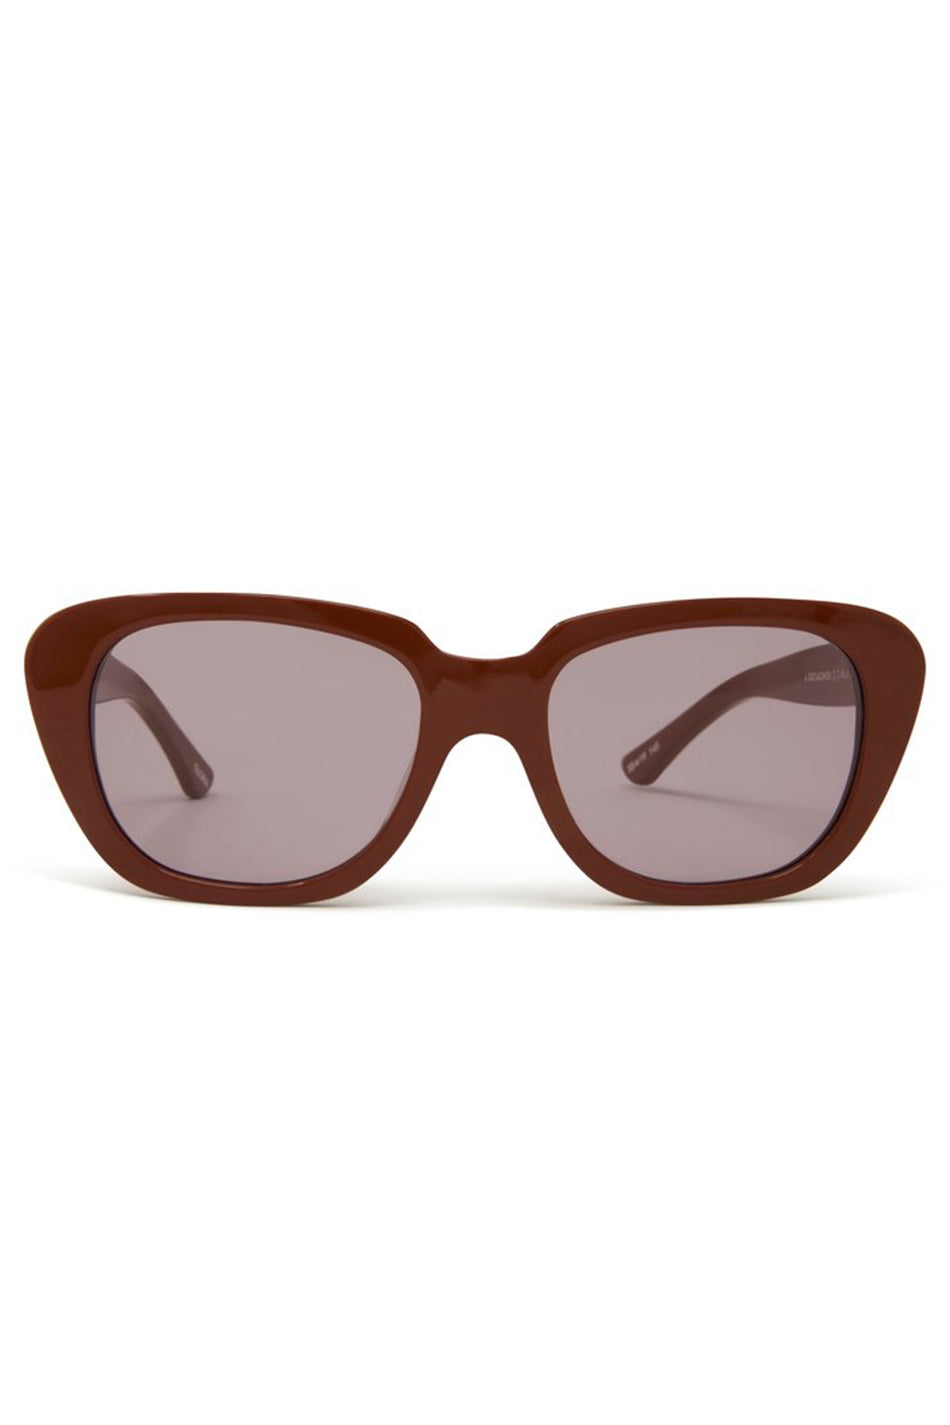 CARLA COLOUR - GLORIA sunglasses, Annatto